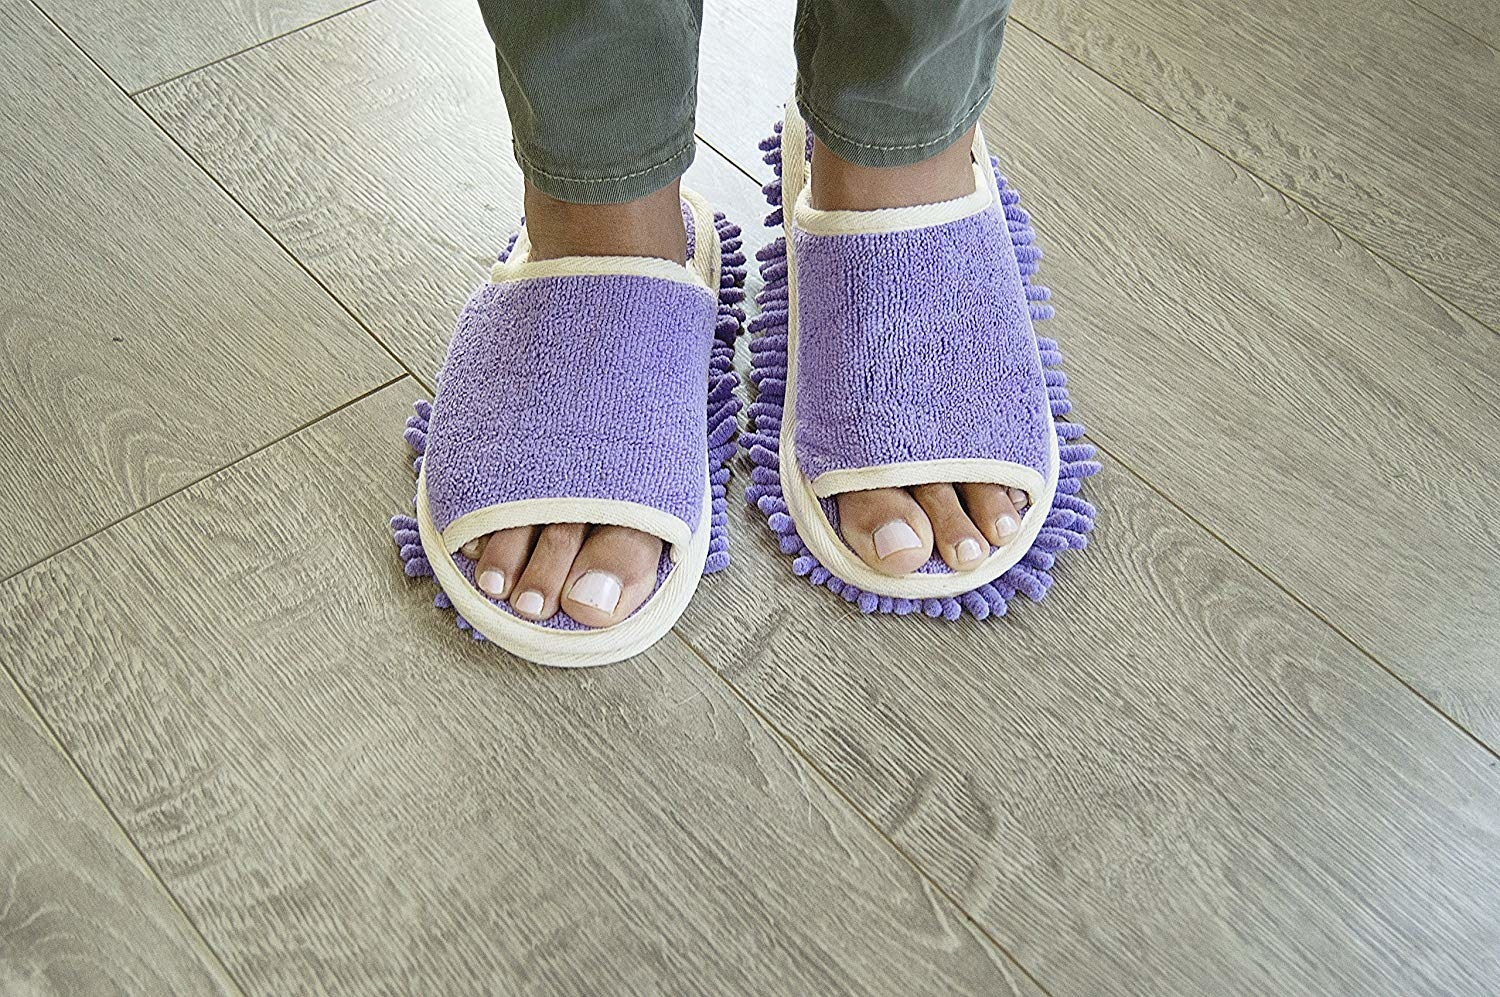 A person wear soft slippers There are short pieces of chenille yarn attached to the bottom